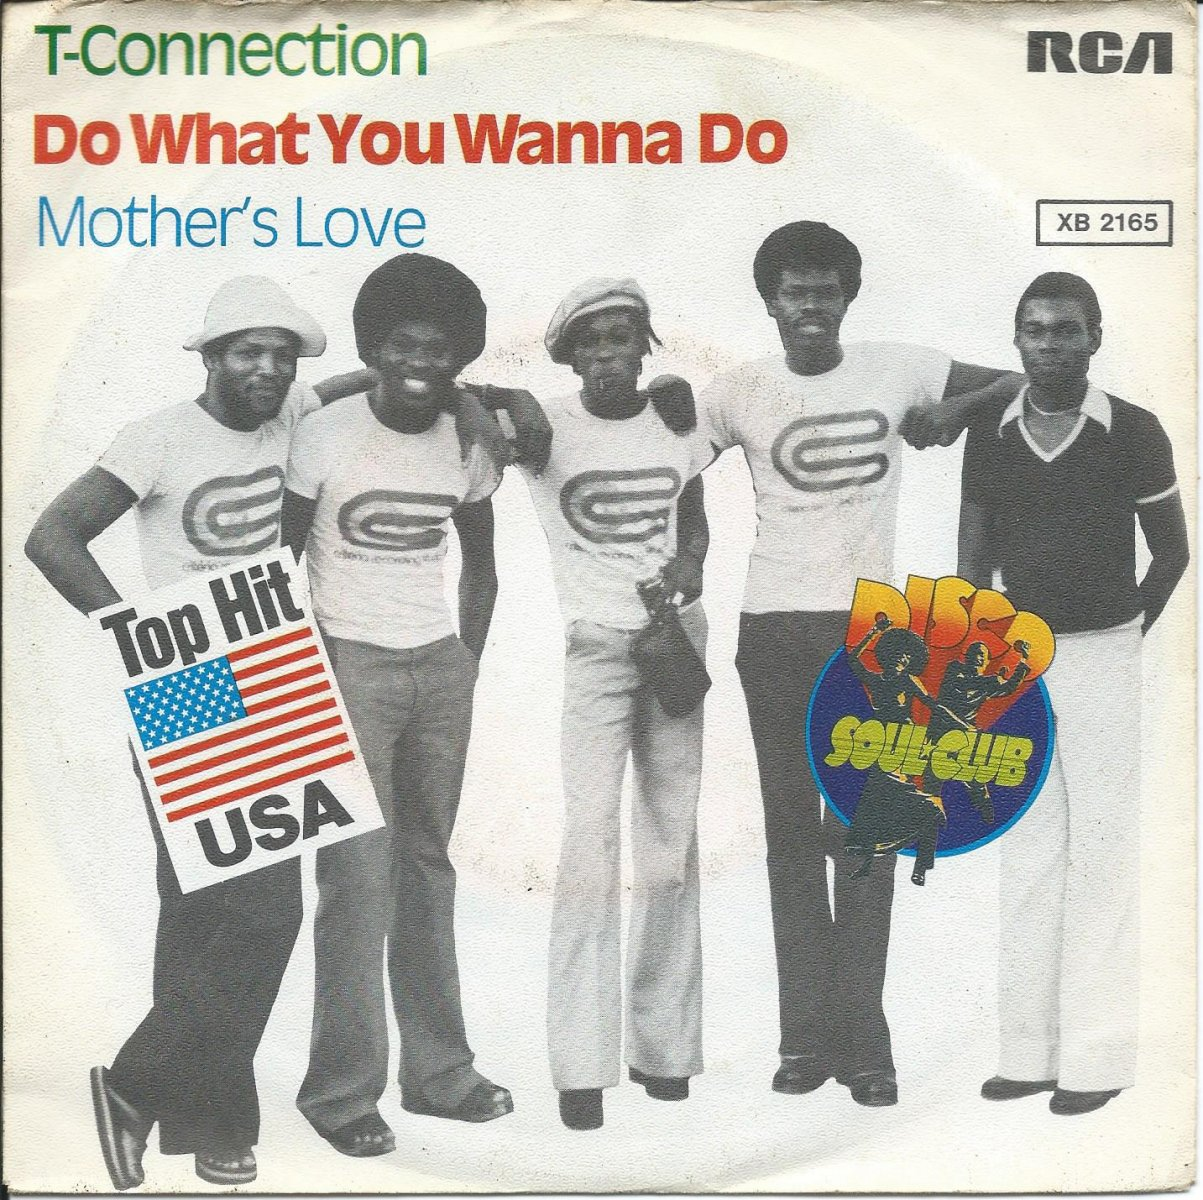 T-CONNECTION ‎/ DO WHAT YOU WANNA DO / MOTHER'S LOVE (7